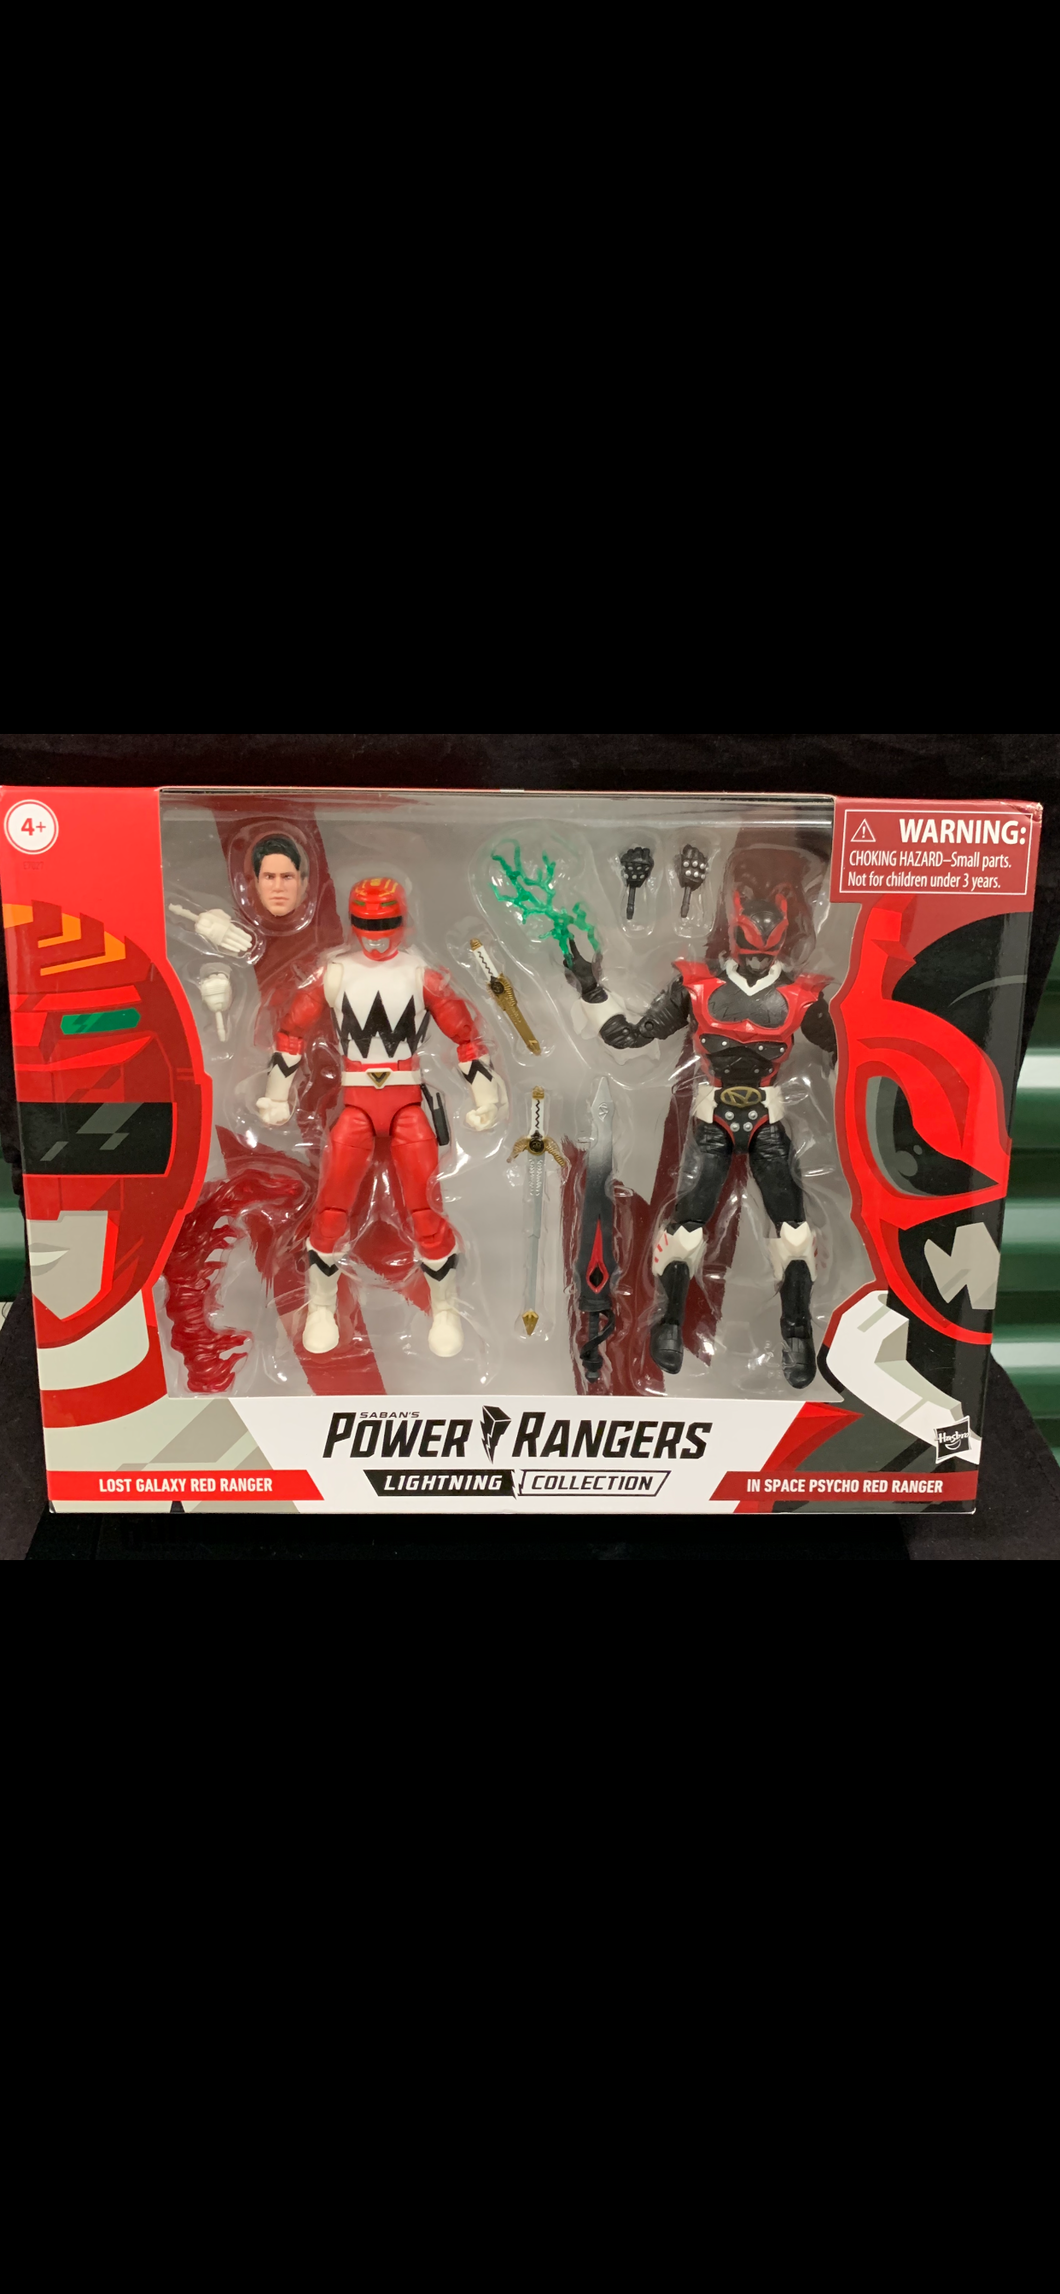 Power Rangers lightning collection 2 pack